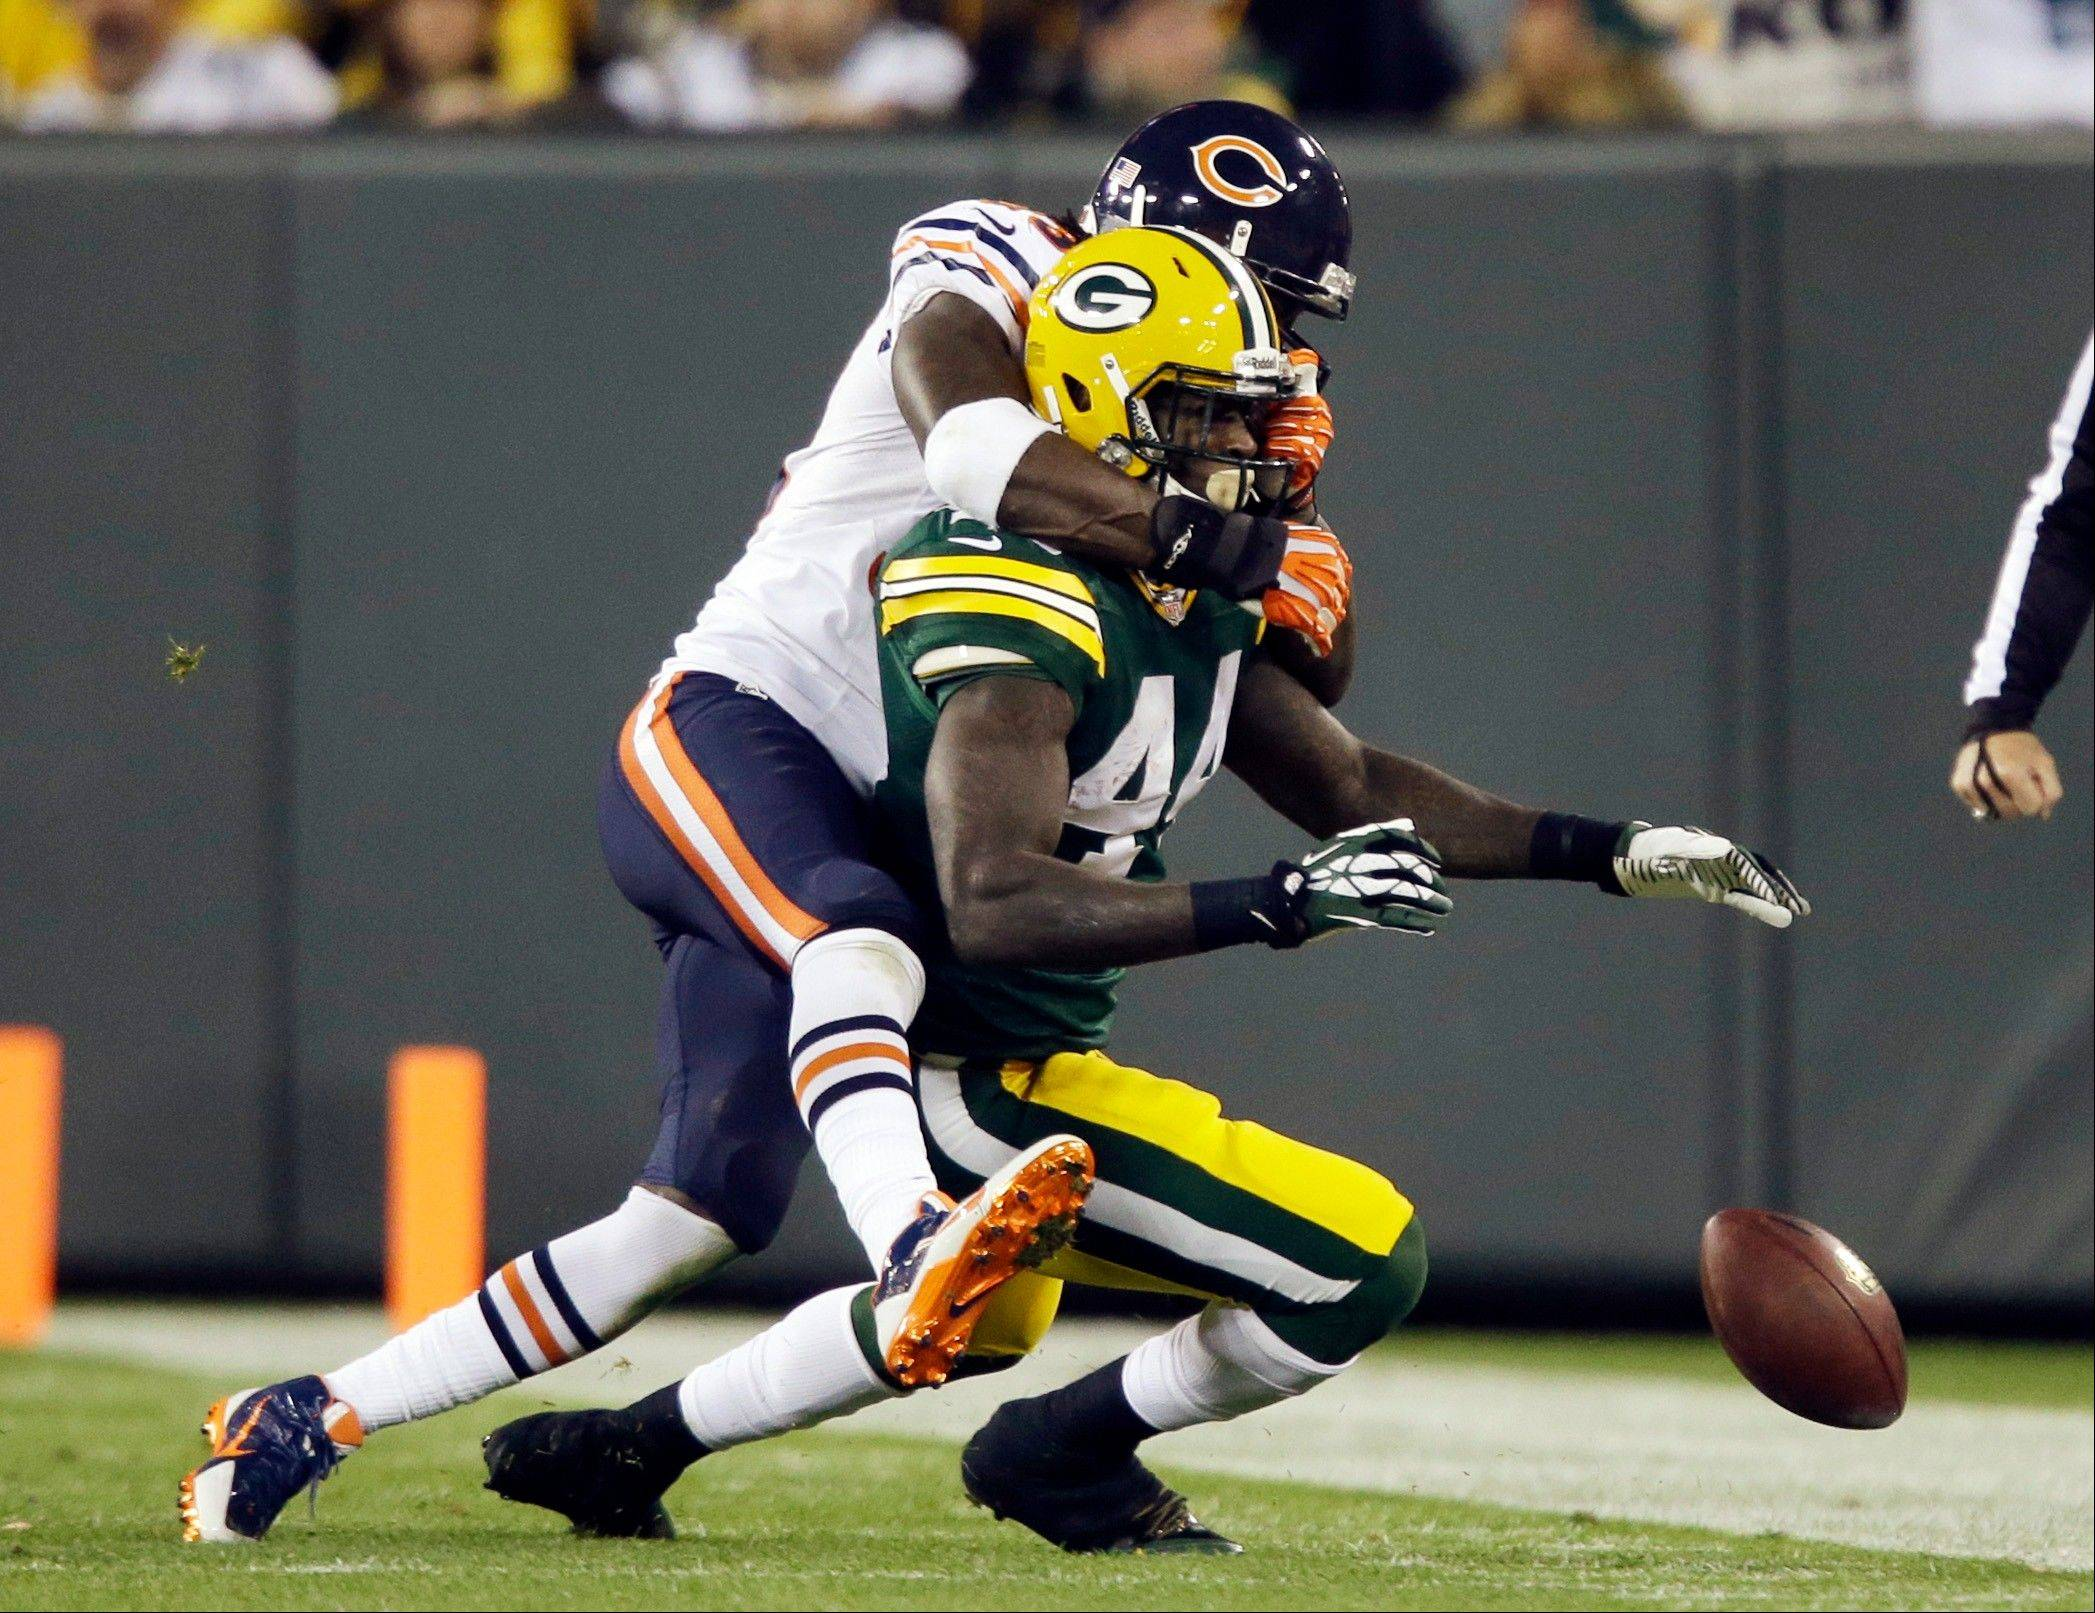 Green Bay Packers' James Starks fumbles out of bounds as he is hit by Chicago Bears' Charles Tillman during the first half .